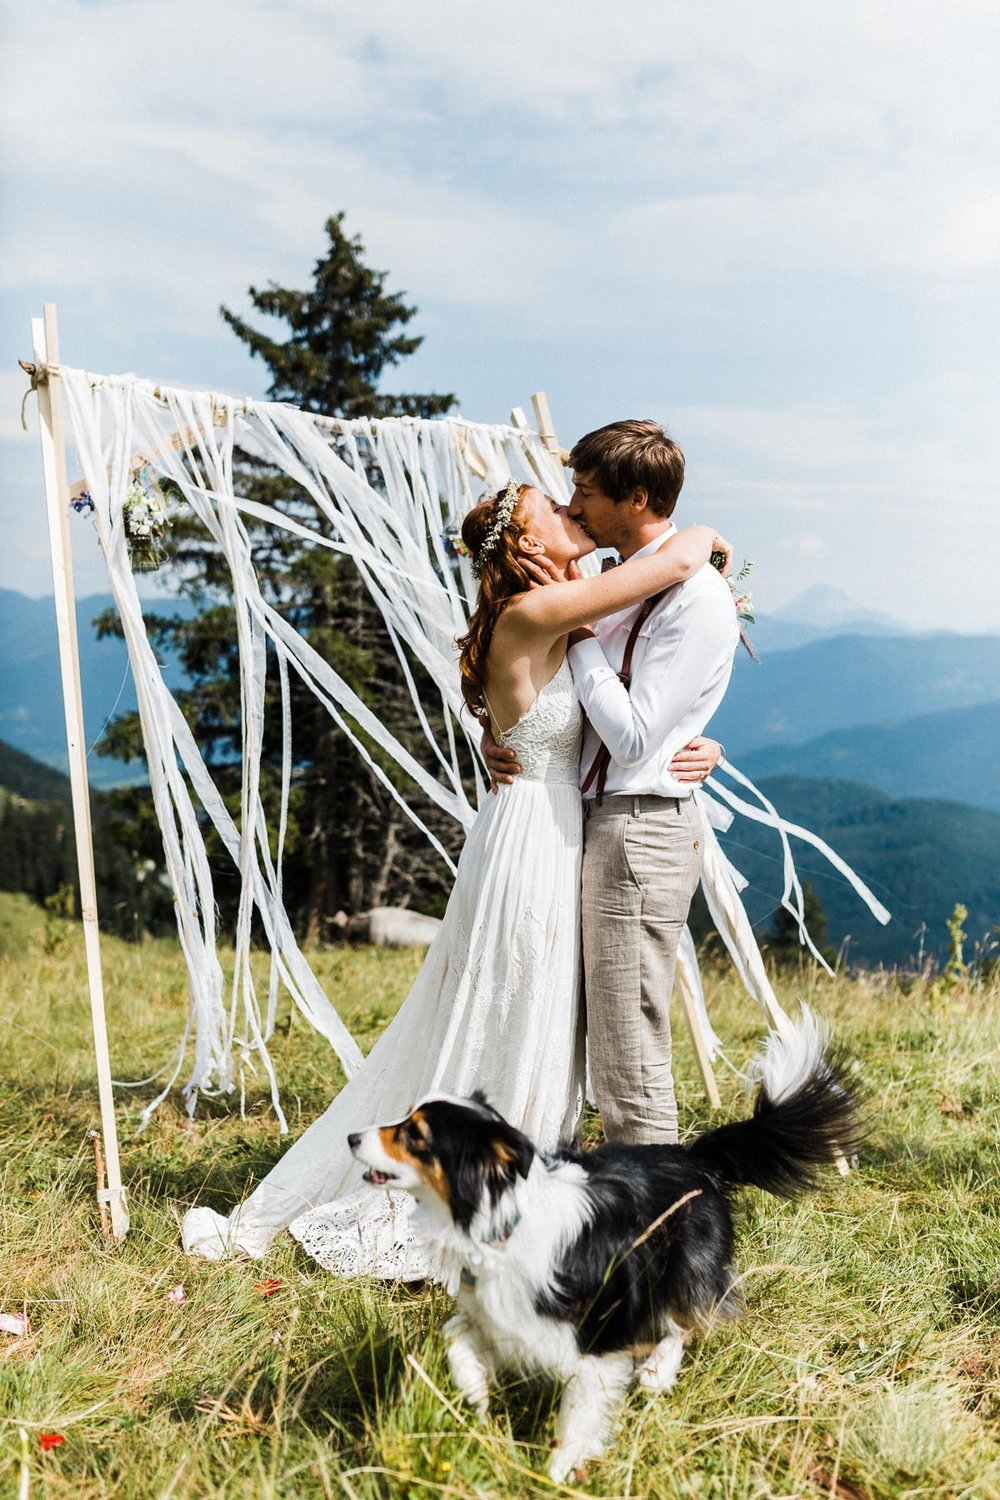 bavaria-wedding-bavarian-alps-boho-mountain-wedding-germany-bavaria-wedding-photographer (91).jpg